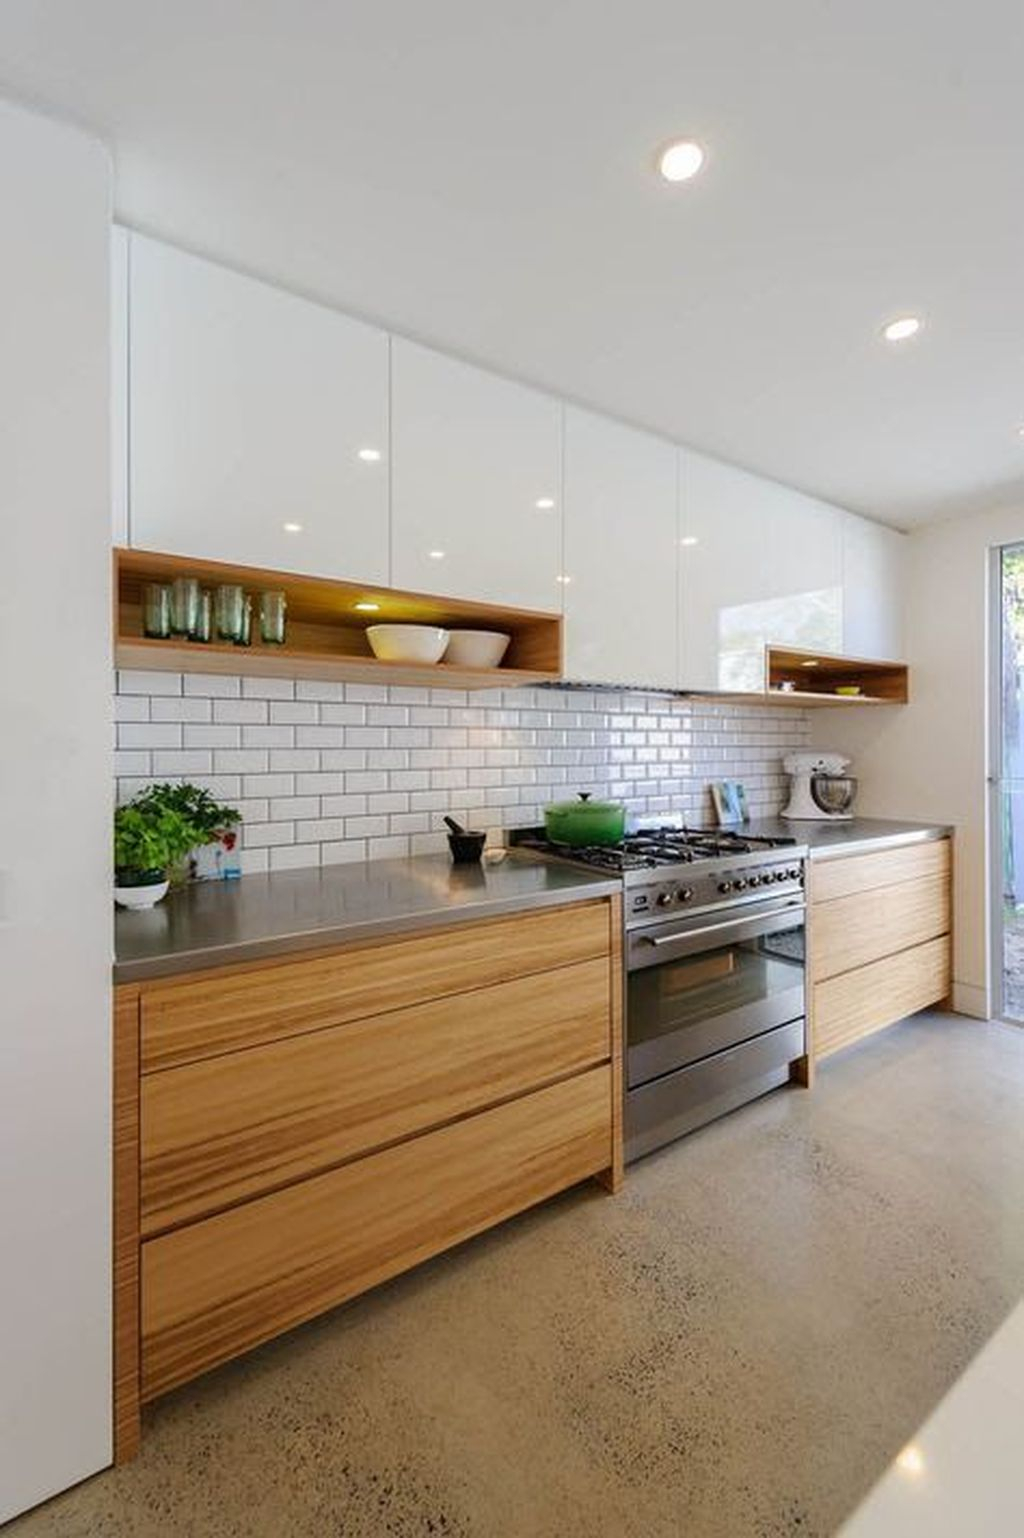 31 Awesome Kitchen Design Ideas That You Have To See It